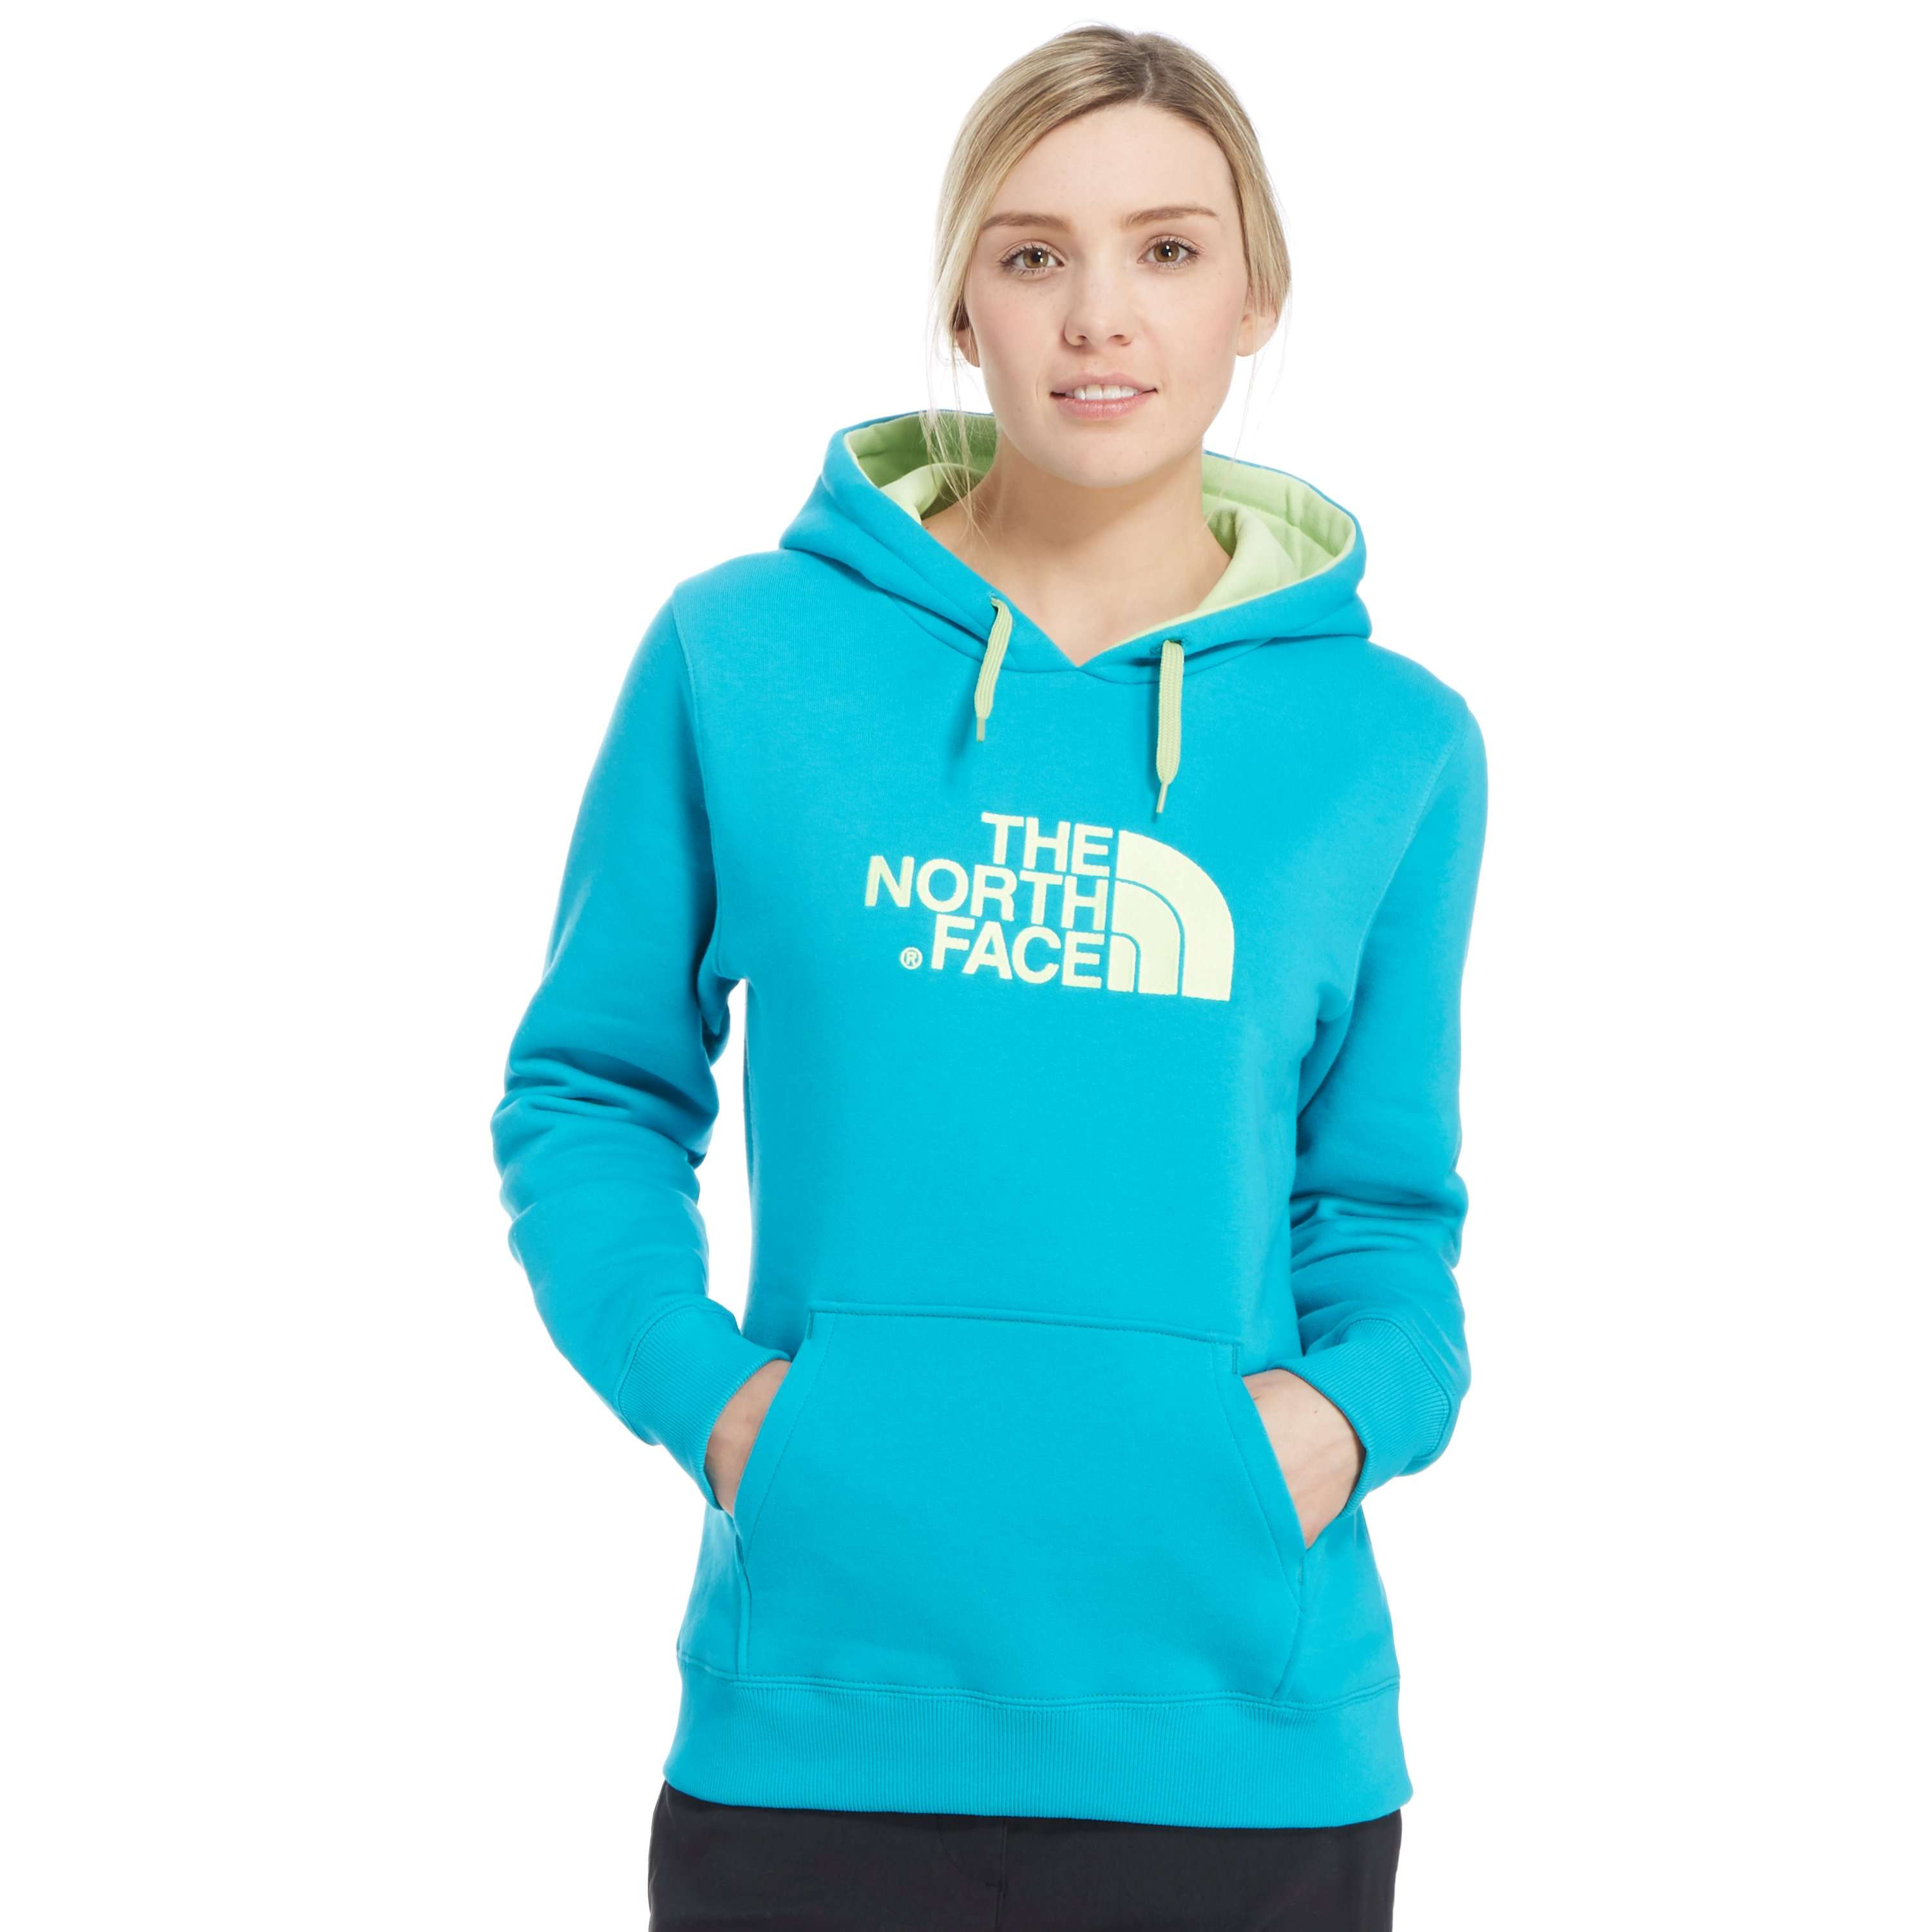 THE NORTH FACE Women's Drew Peak Hoody